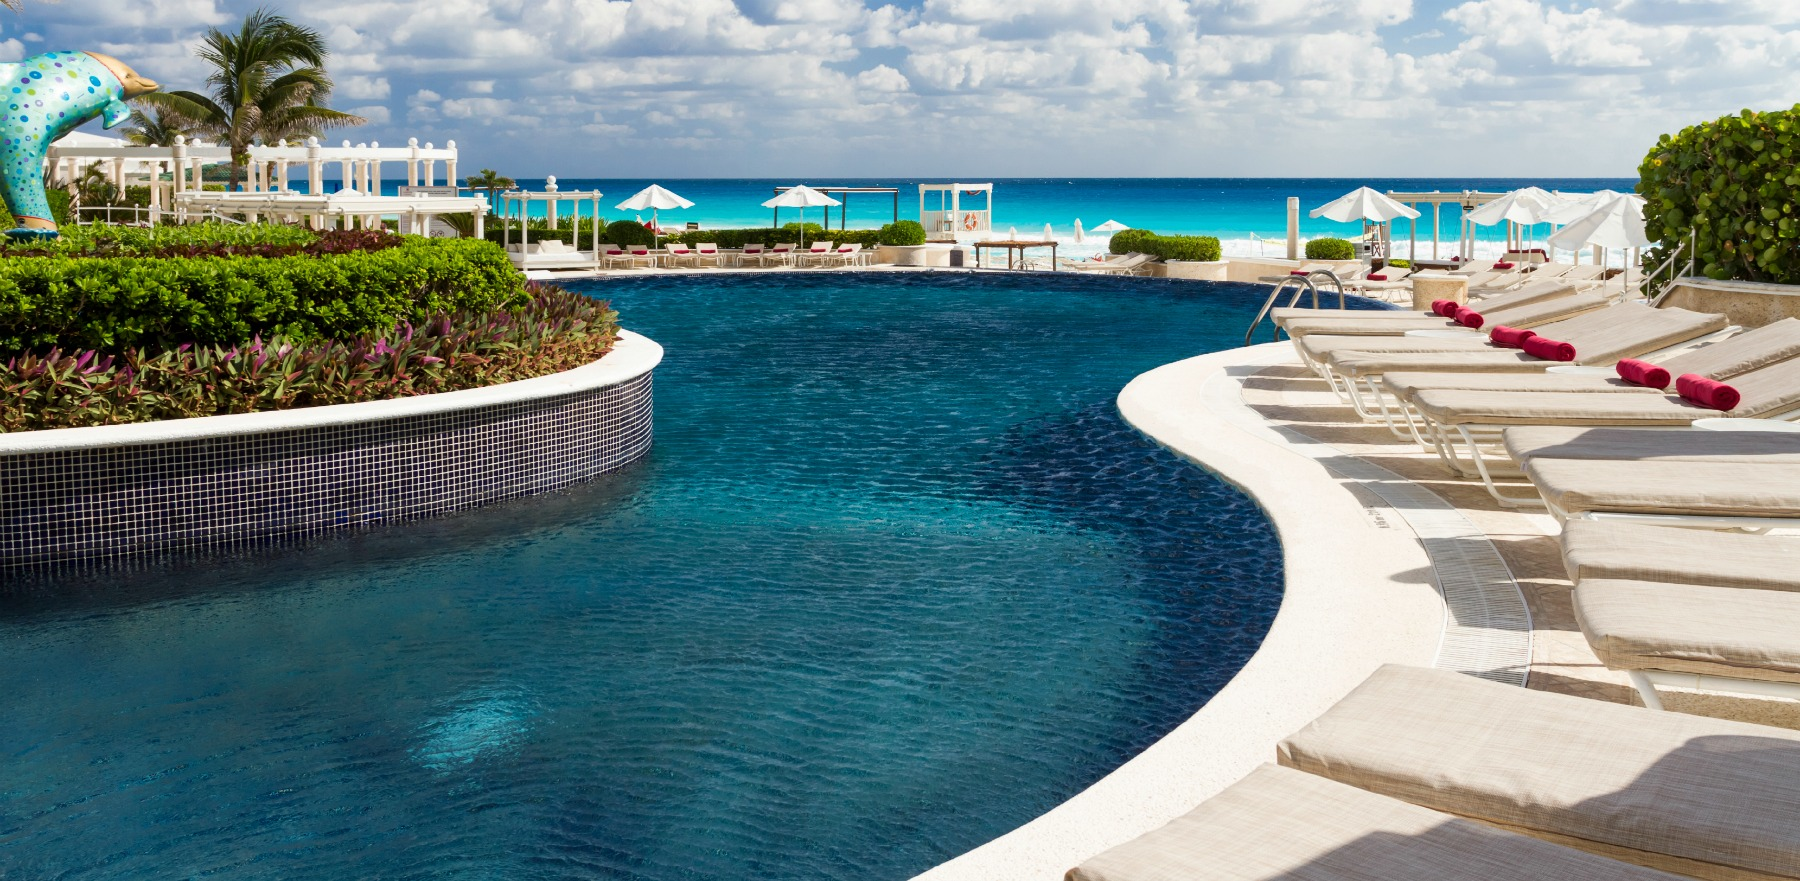 Sandos-Cancun-Luxury-Resort-pool